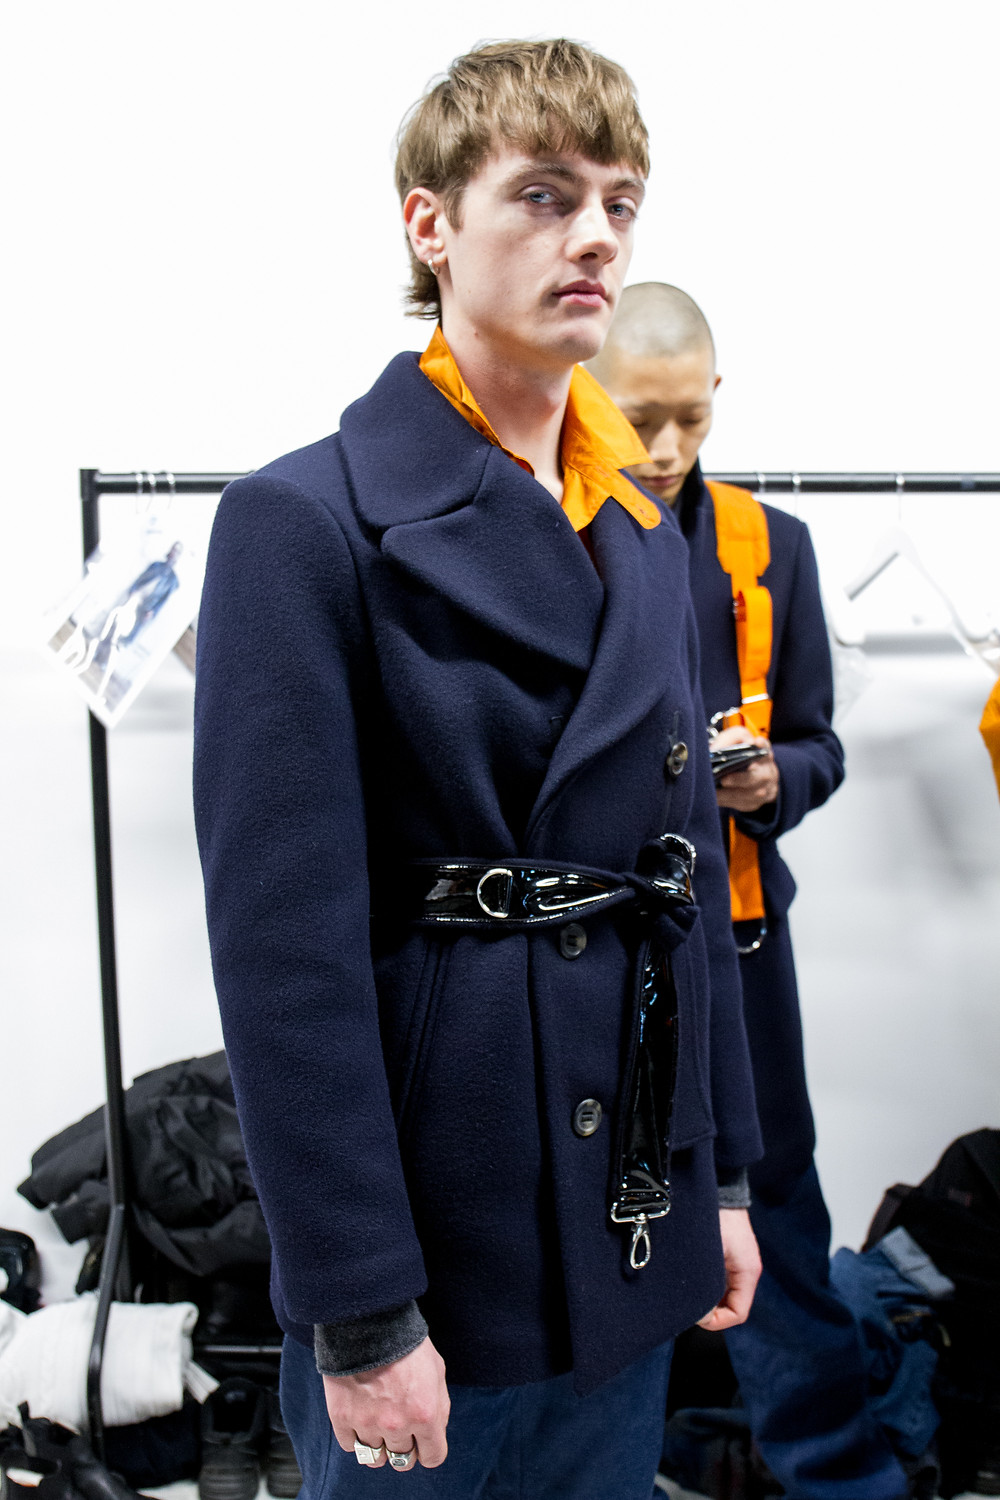 Backstage TONSURE DiscoveryLAB Fall 2018